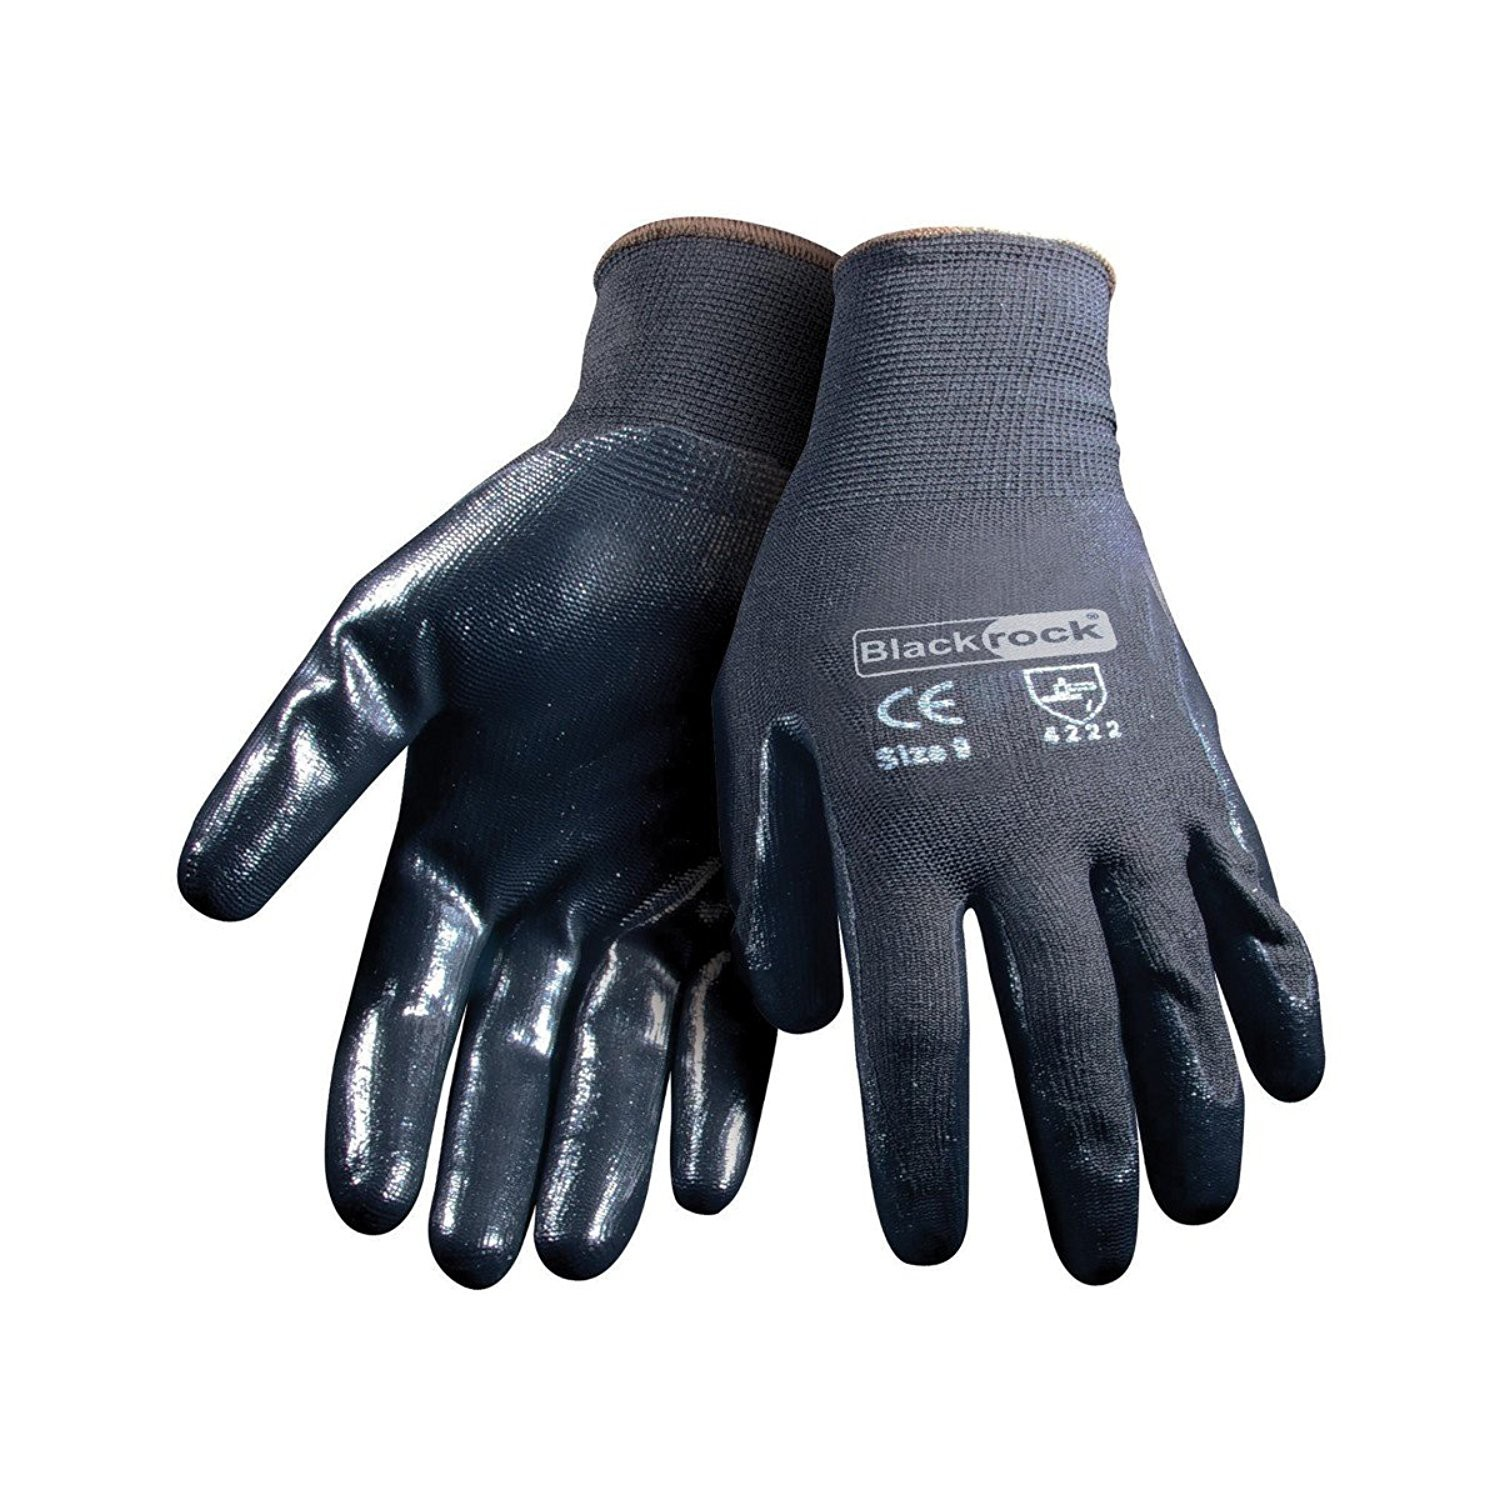 Super Grip Nitrile Gloves 10